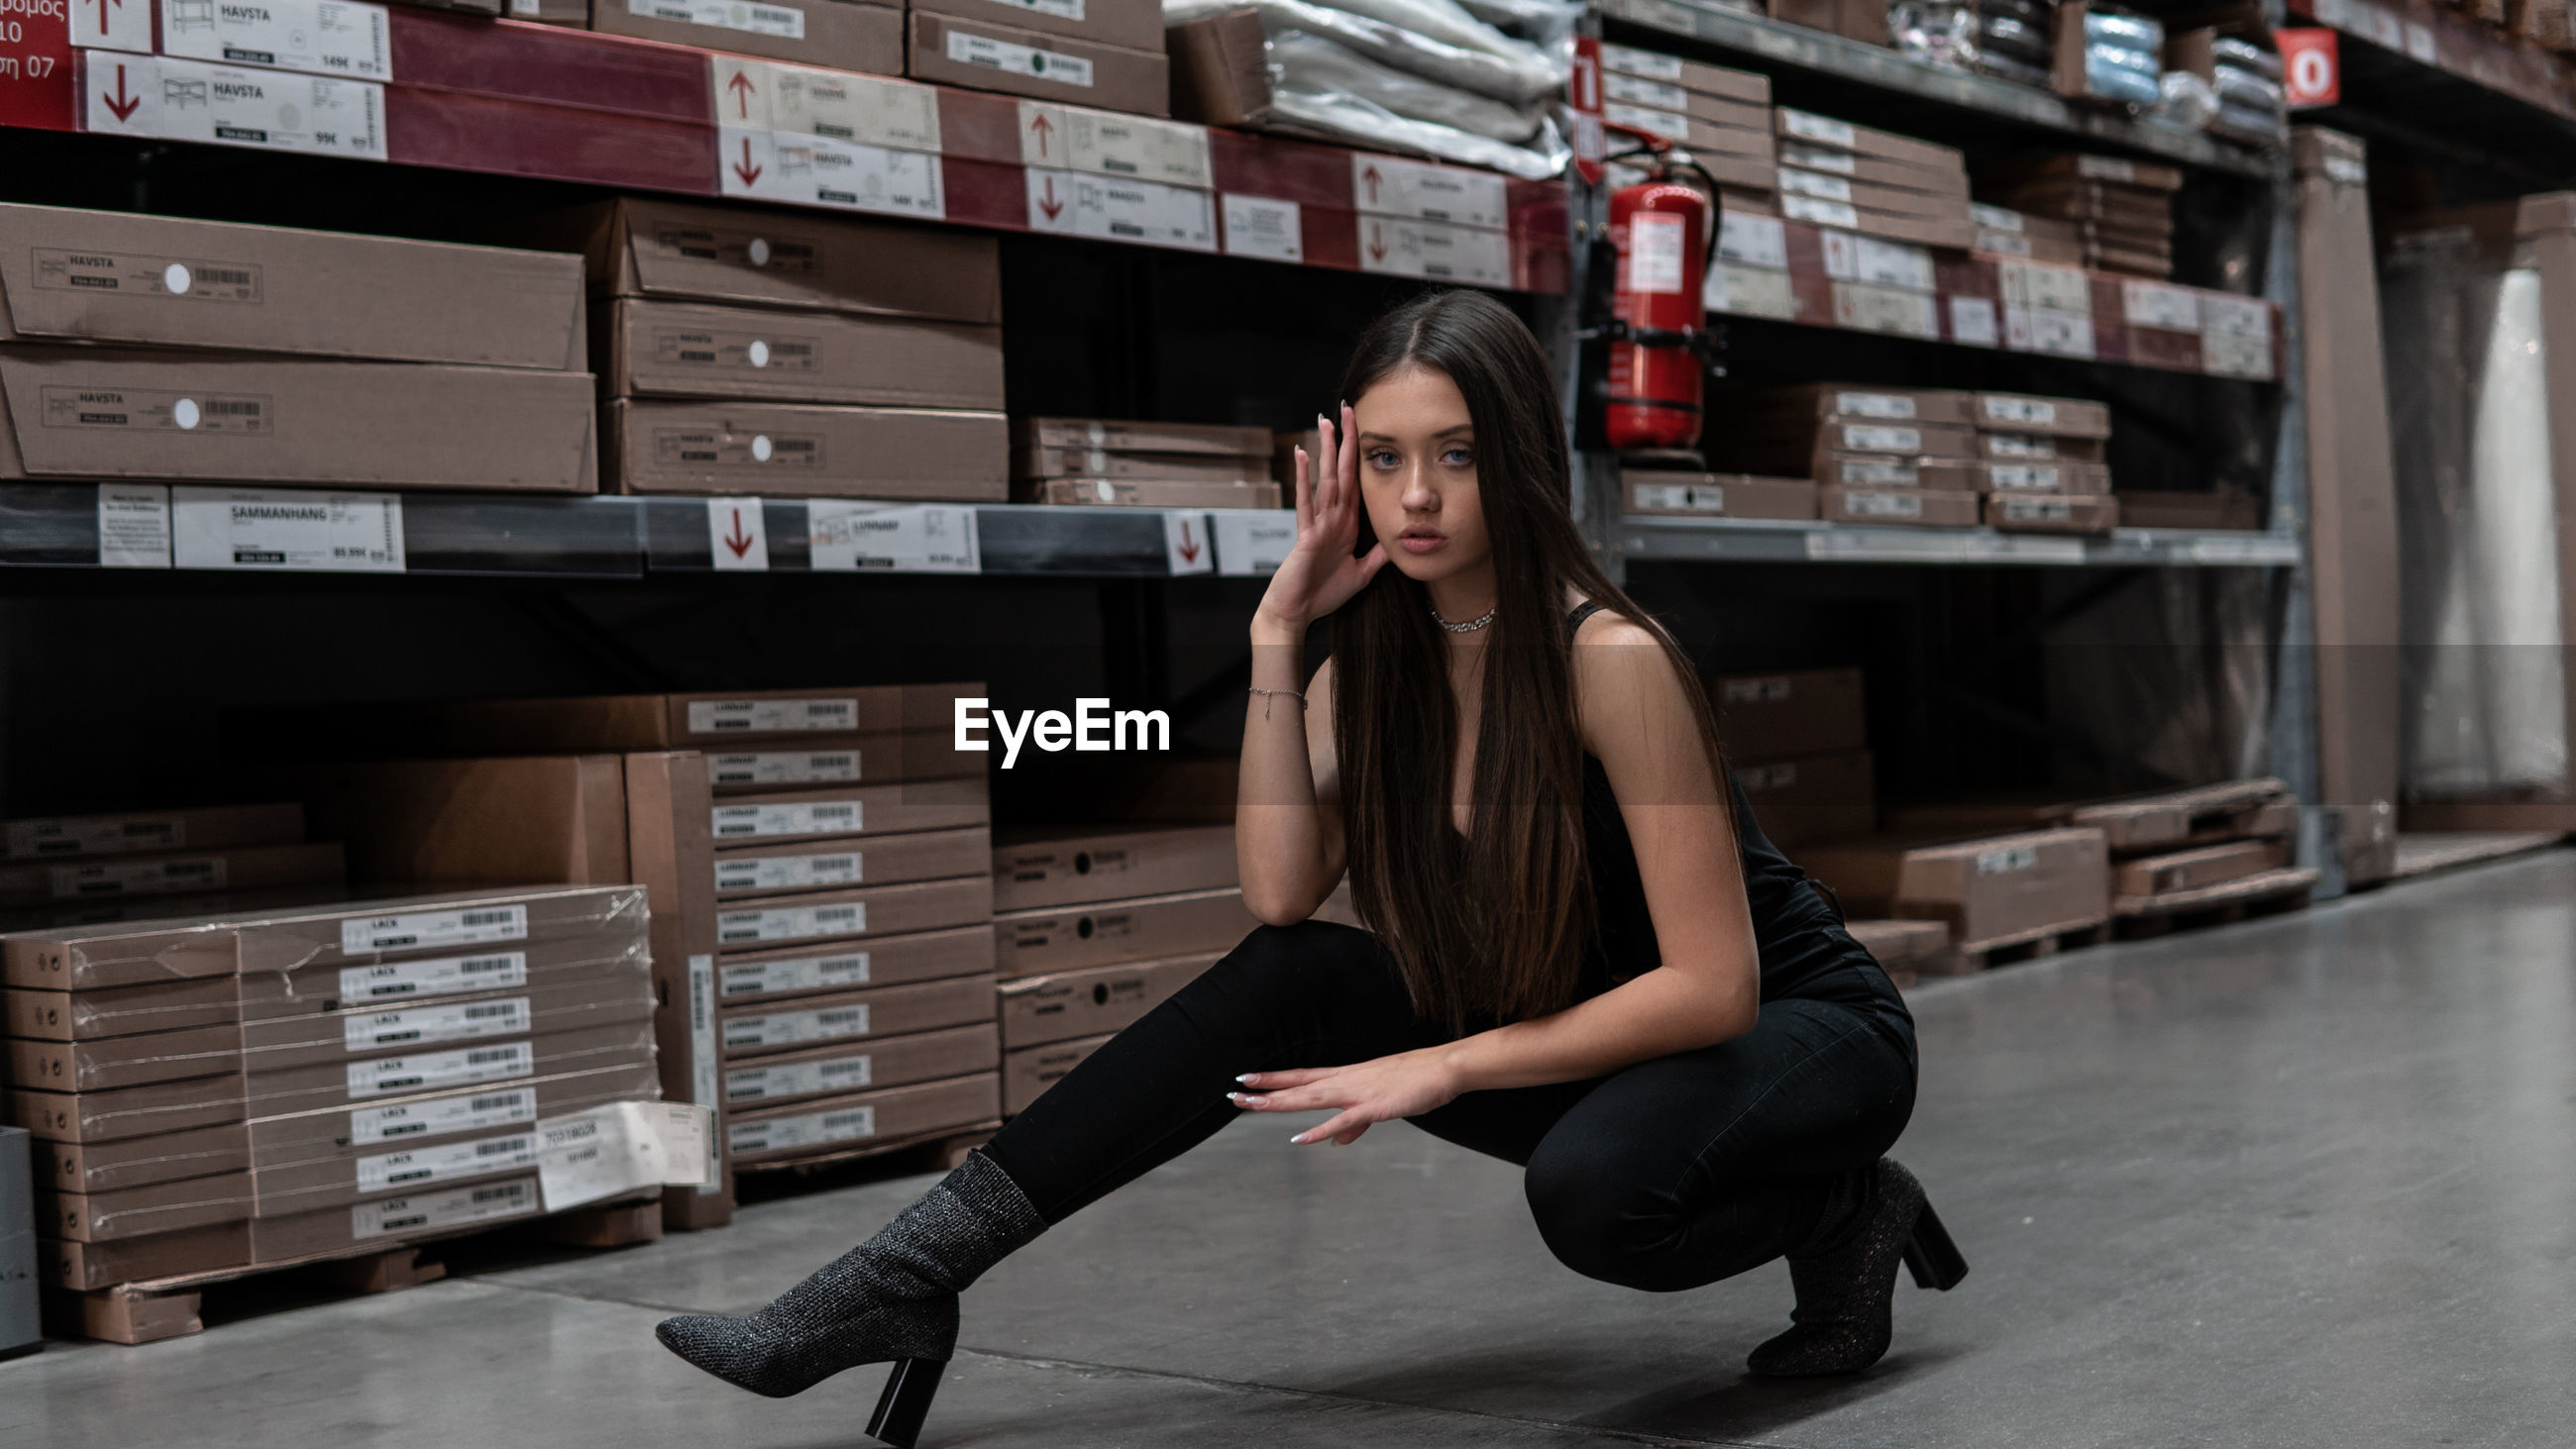 Full length portrait of young woman stretching on floor in warehouse